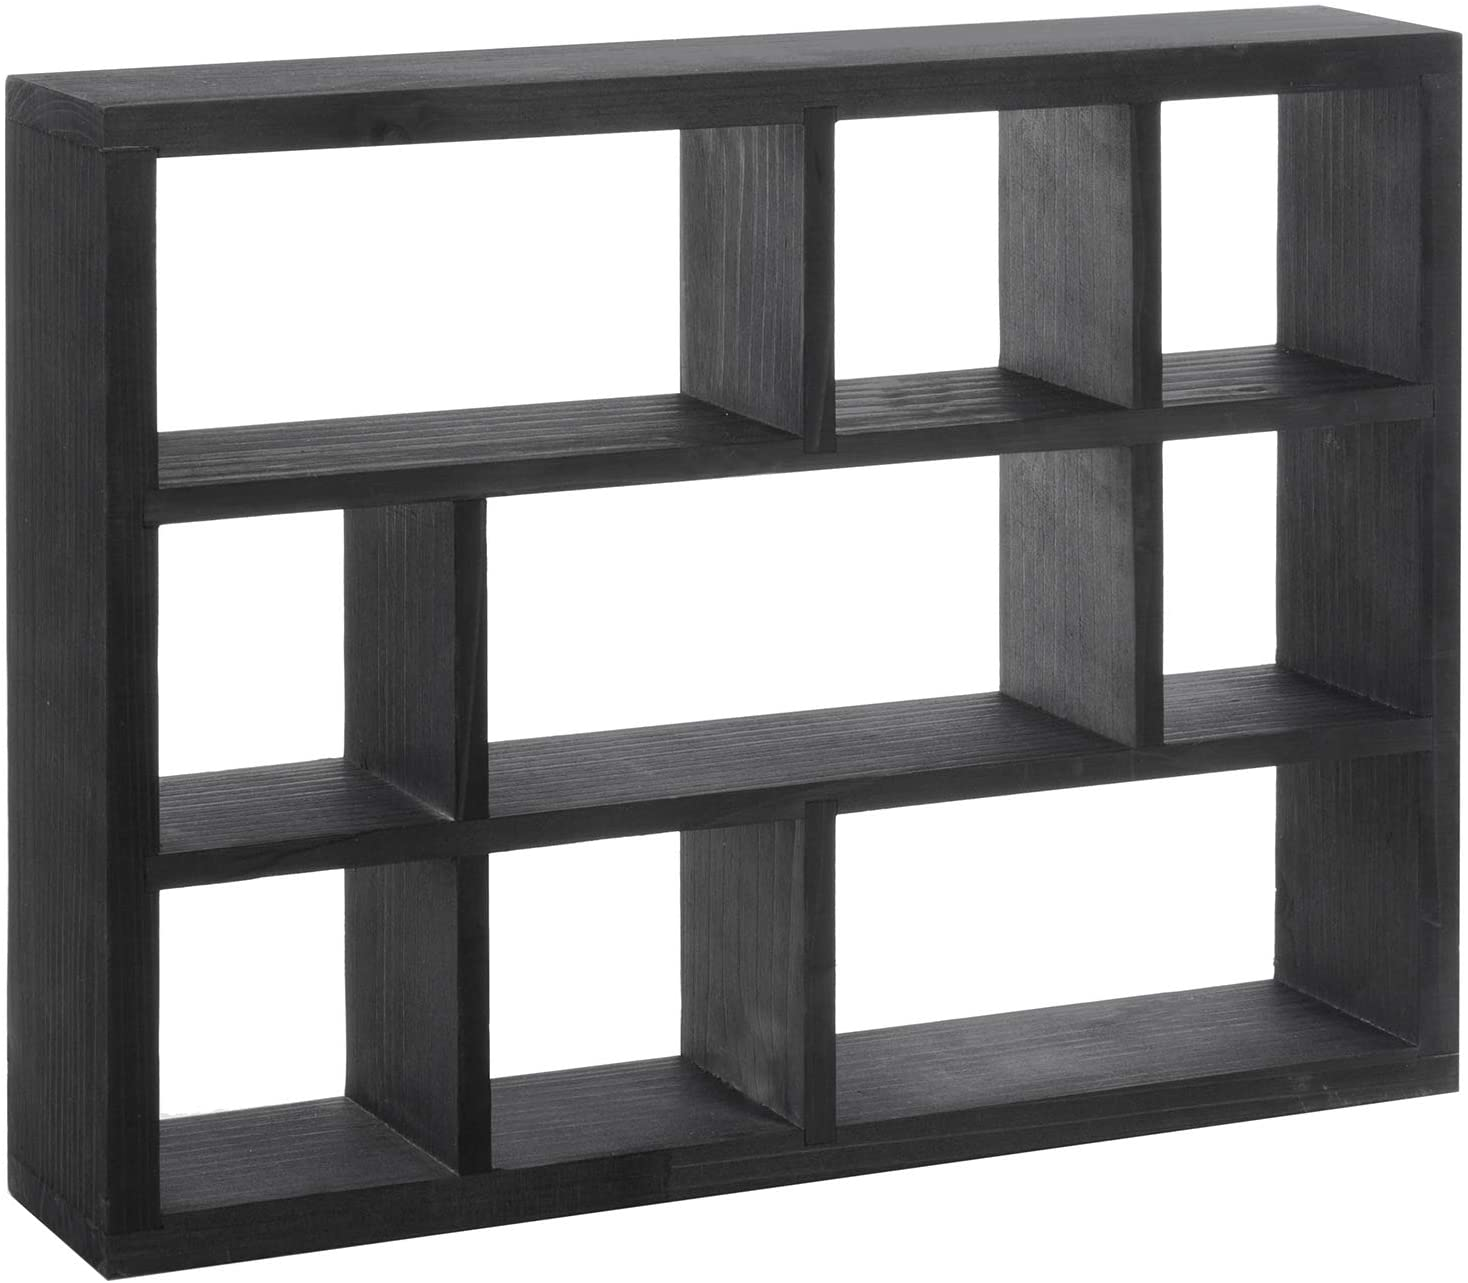 MyGift 15-Inch Wall-Mounted (Vertical or Horizontal) 9-Slot Rustic Wood Floating Shelves/Freestanding Shadow Box, Black